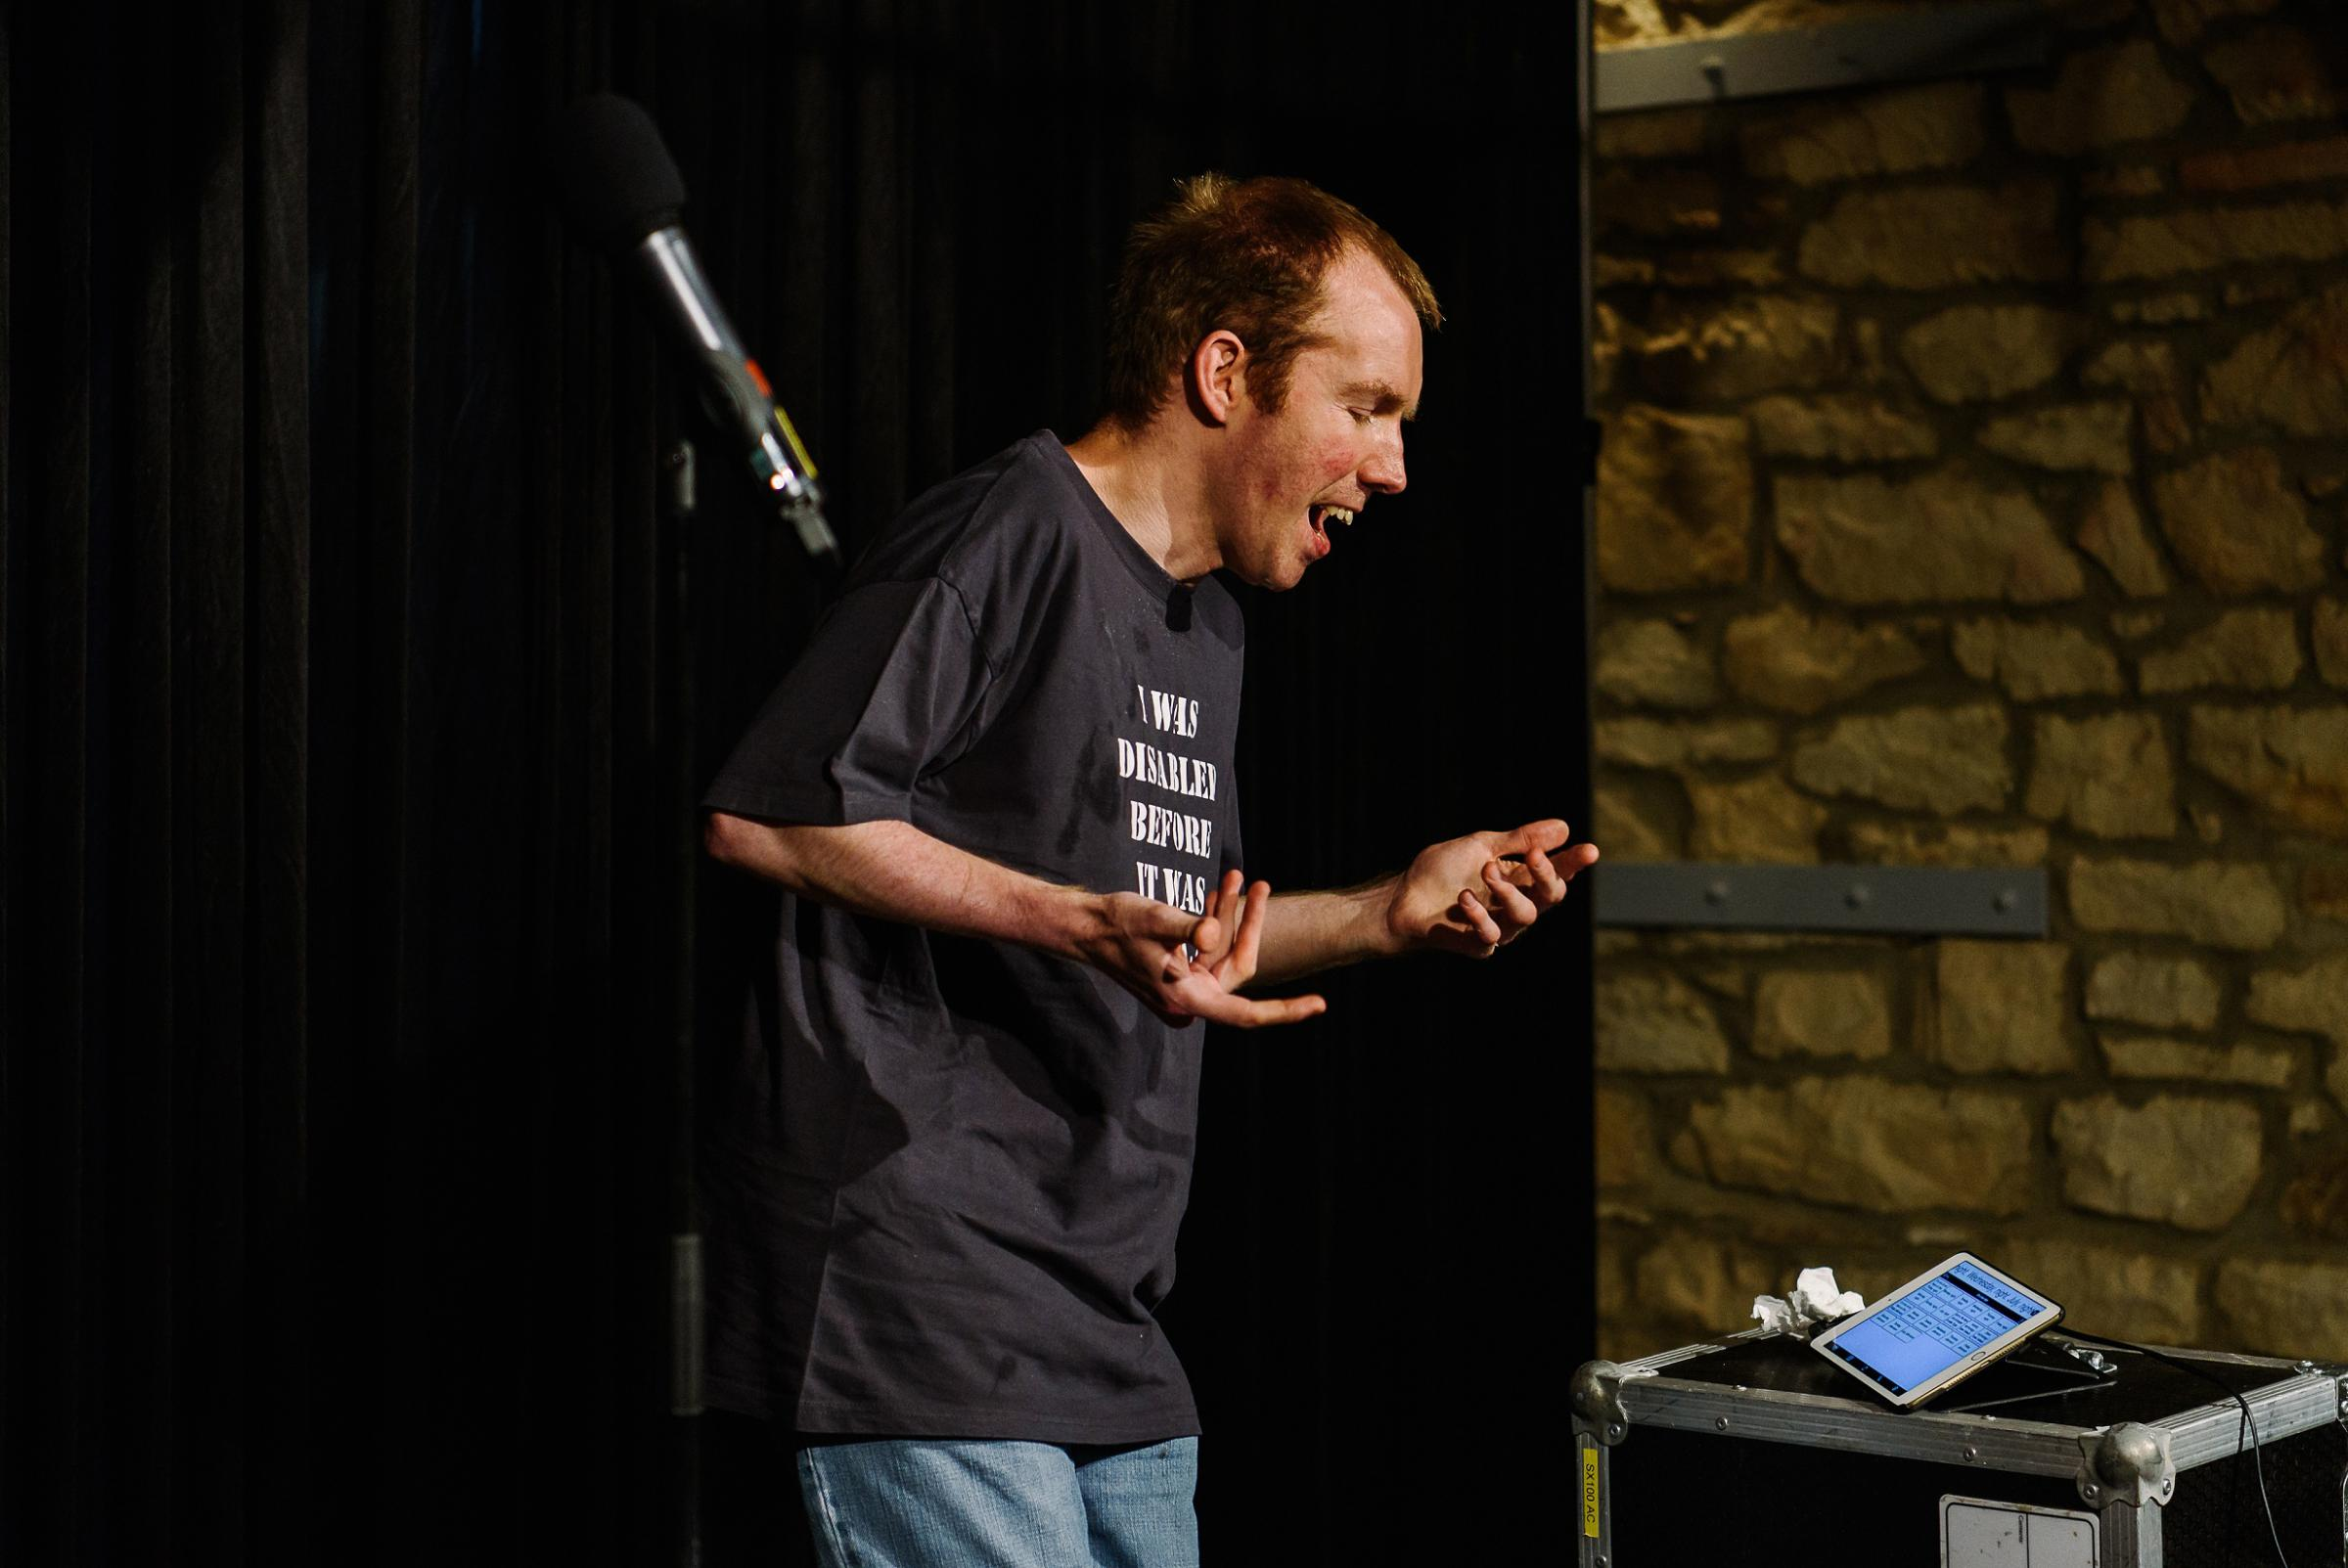 HOME: Lee Ridley, known as The Lost Voice Guy, is coming home for a celebratory gig